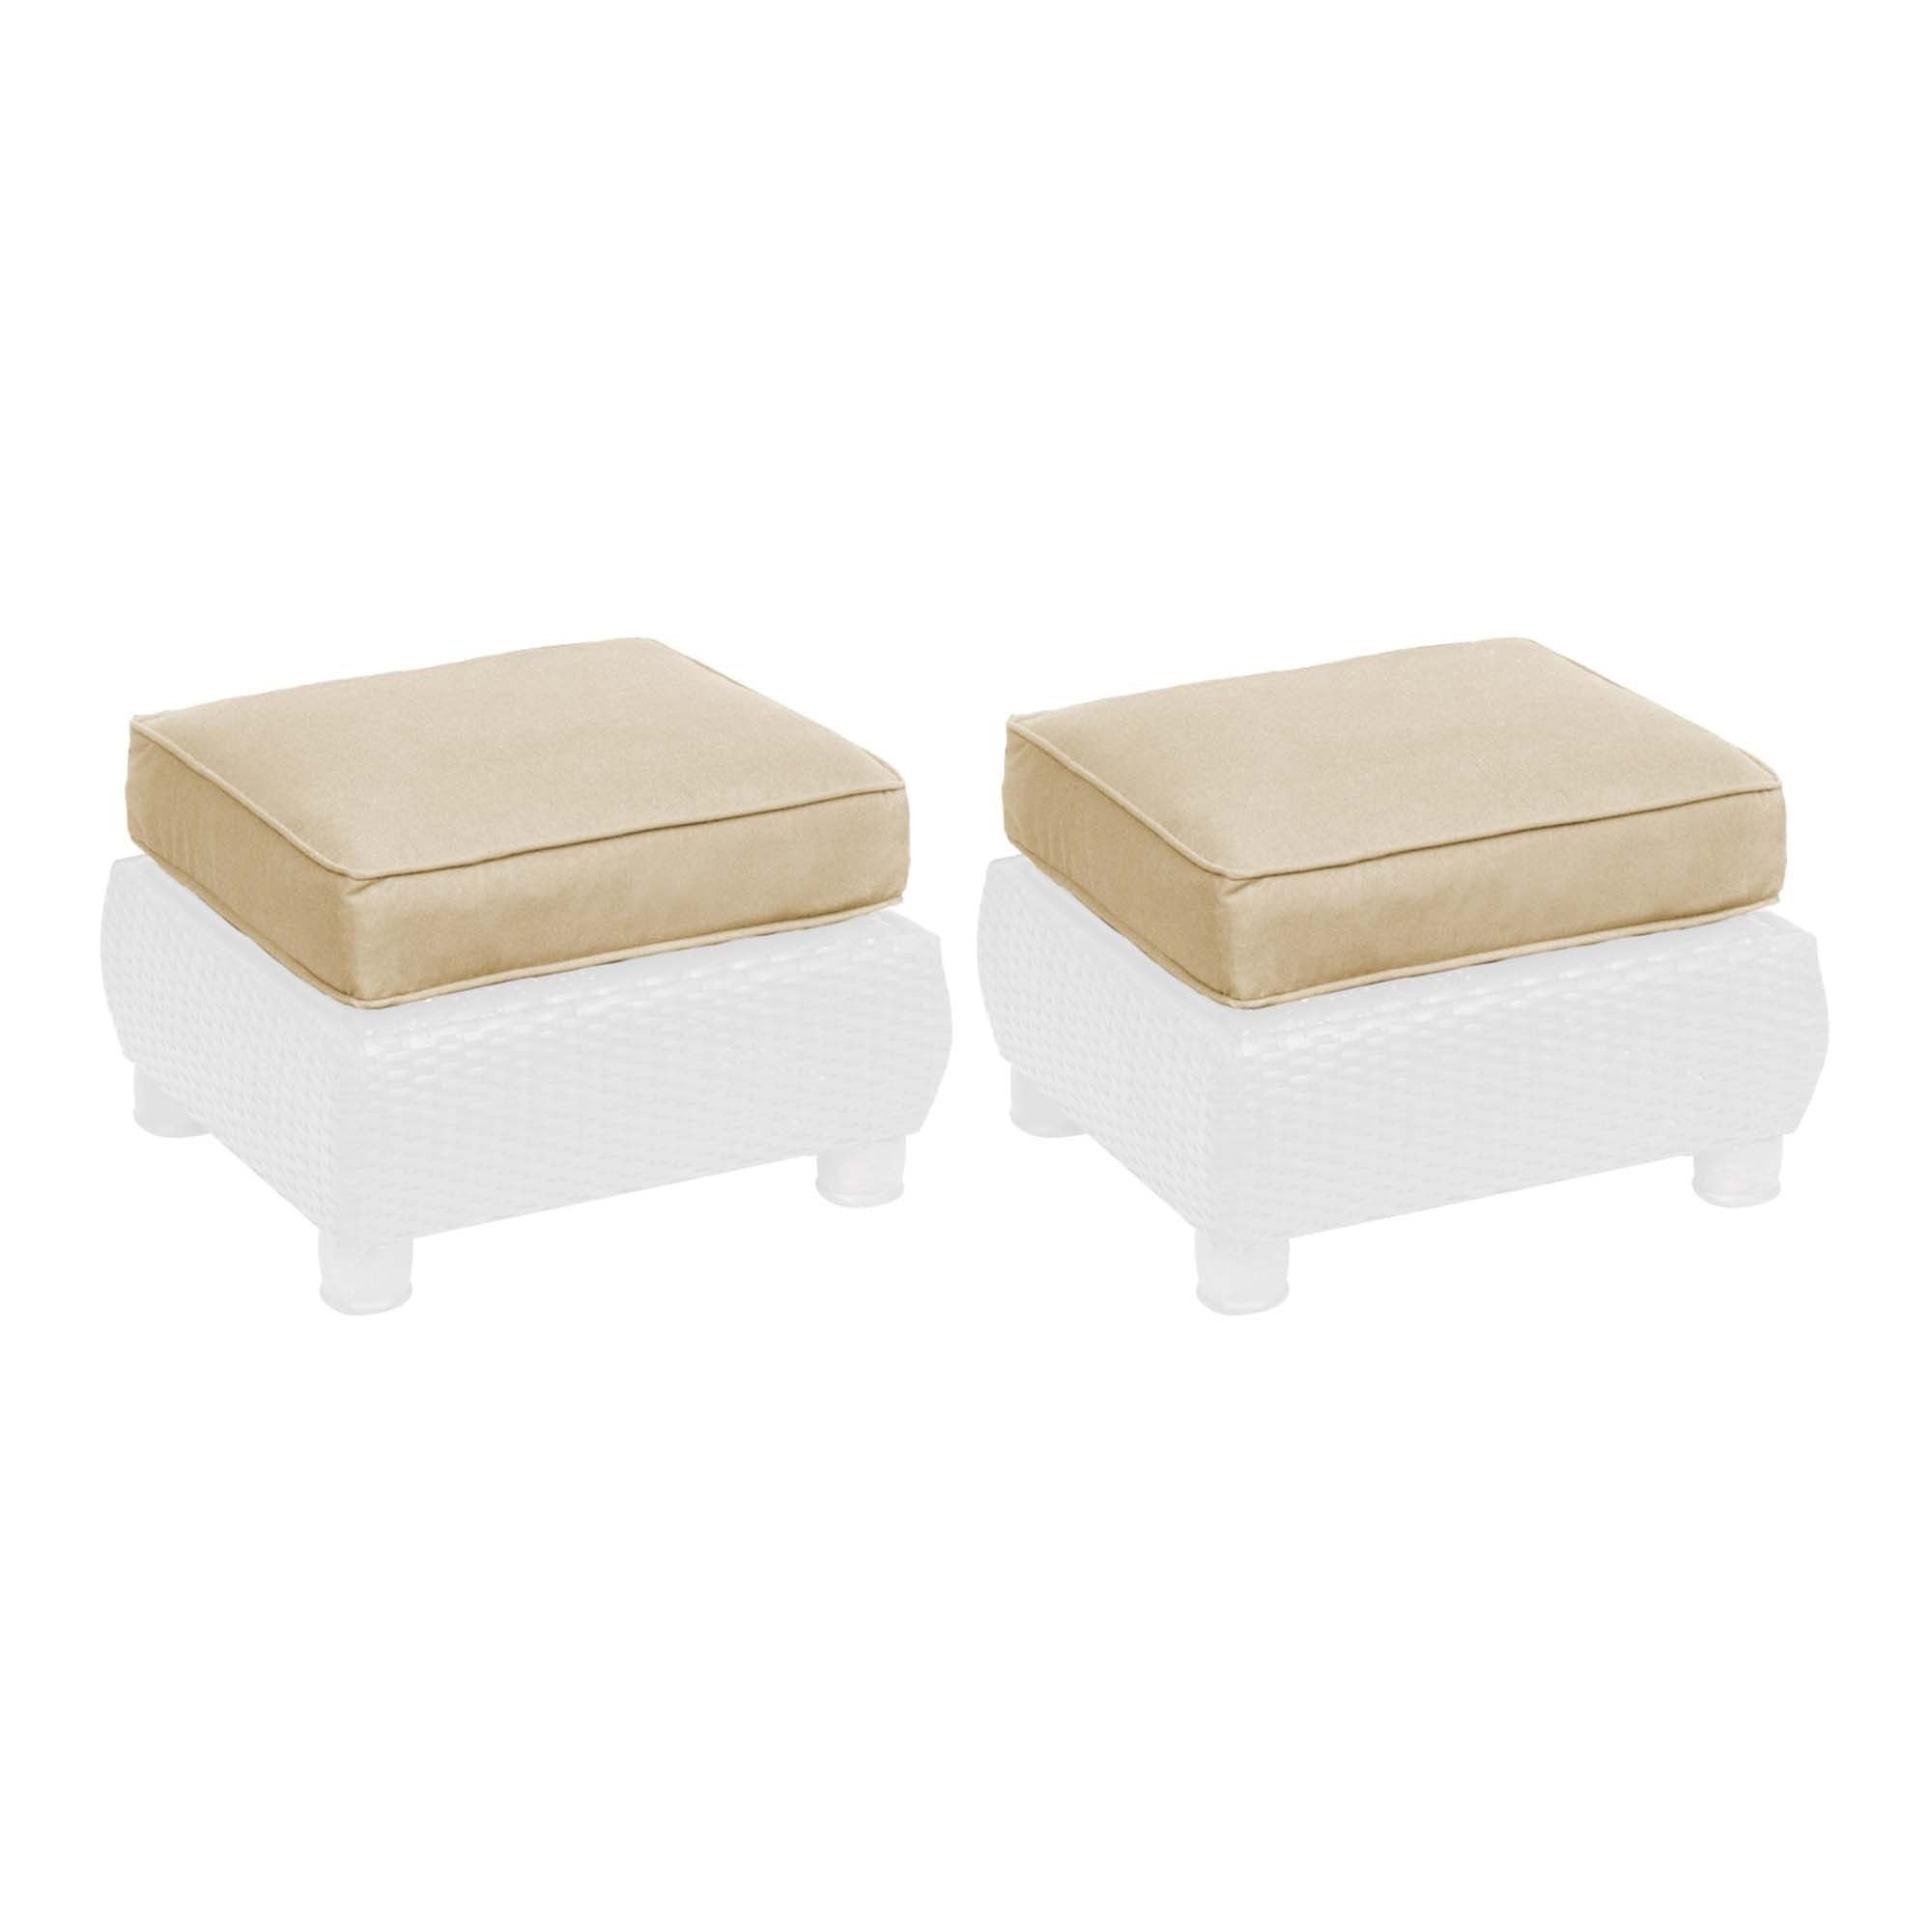 Replacement cushions breckenridge ottoman replacement cushion set of 2